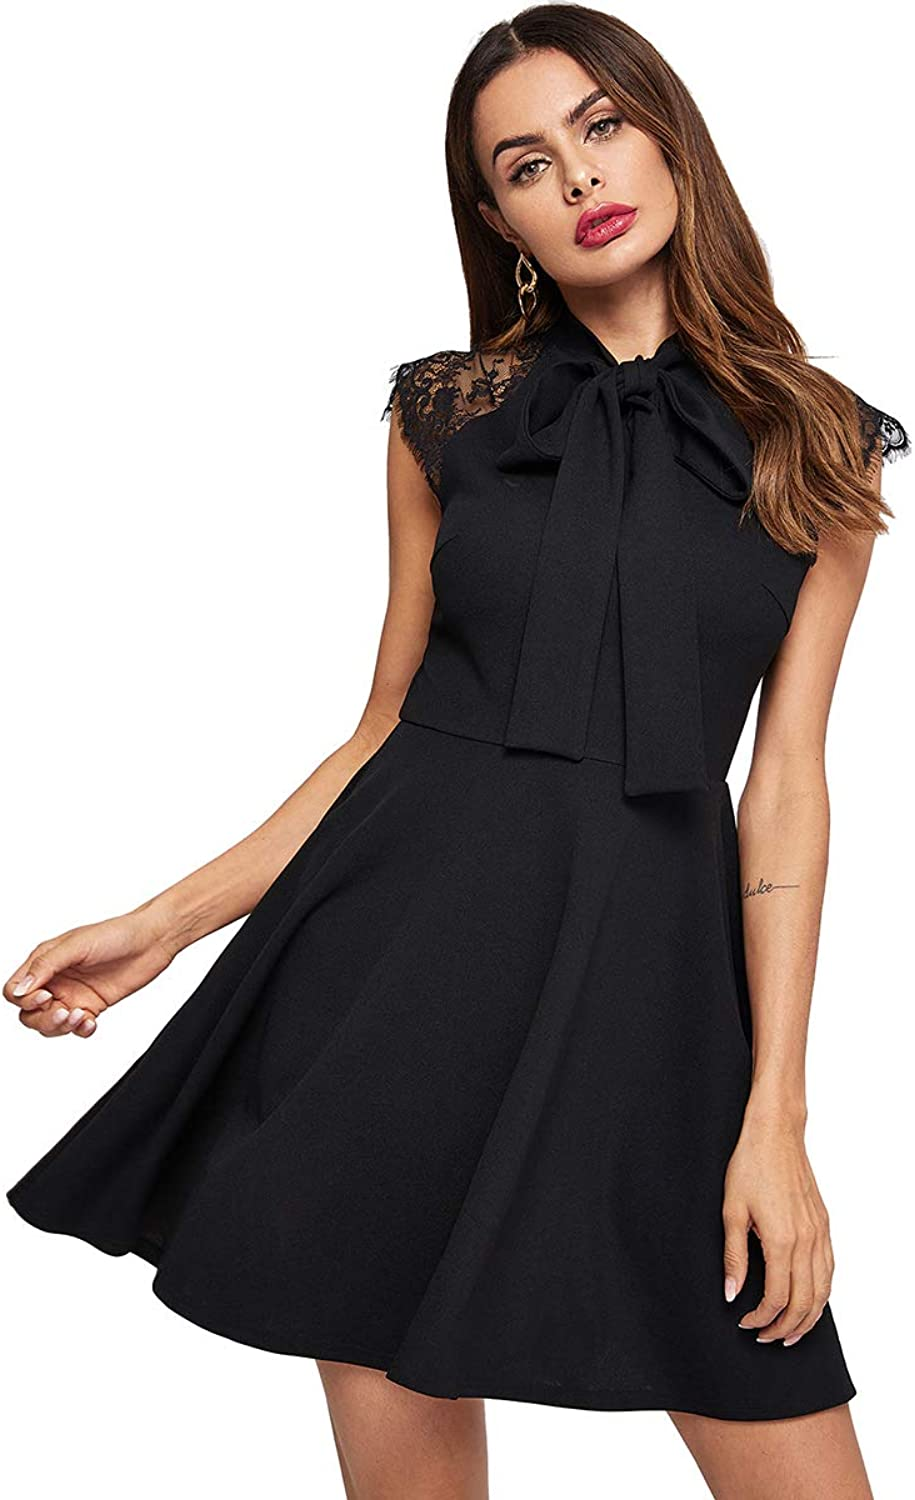 Romwe Women's Vintage Lace Cap Sleeve Bow Tie A Line Flare Swing Cocktail Party Dress